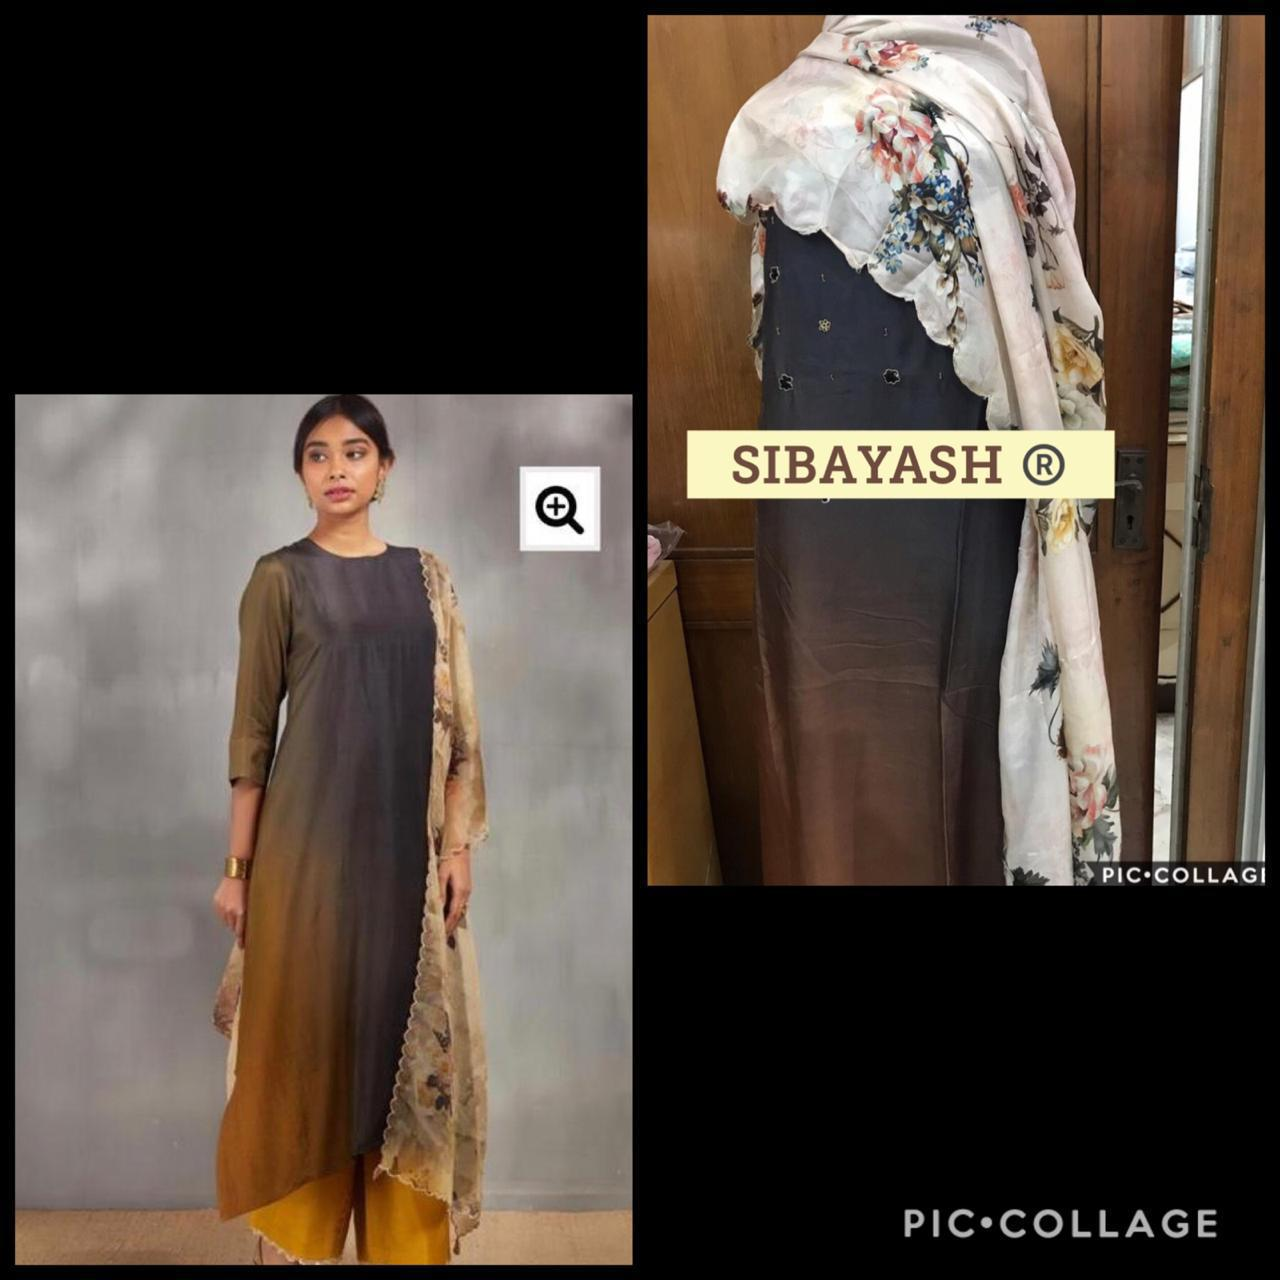 Buy Sibayash Summer Shades Unstitched Ladies Suits Catalog Online Wholesaler Lowest Price